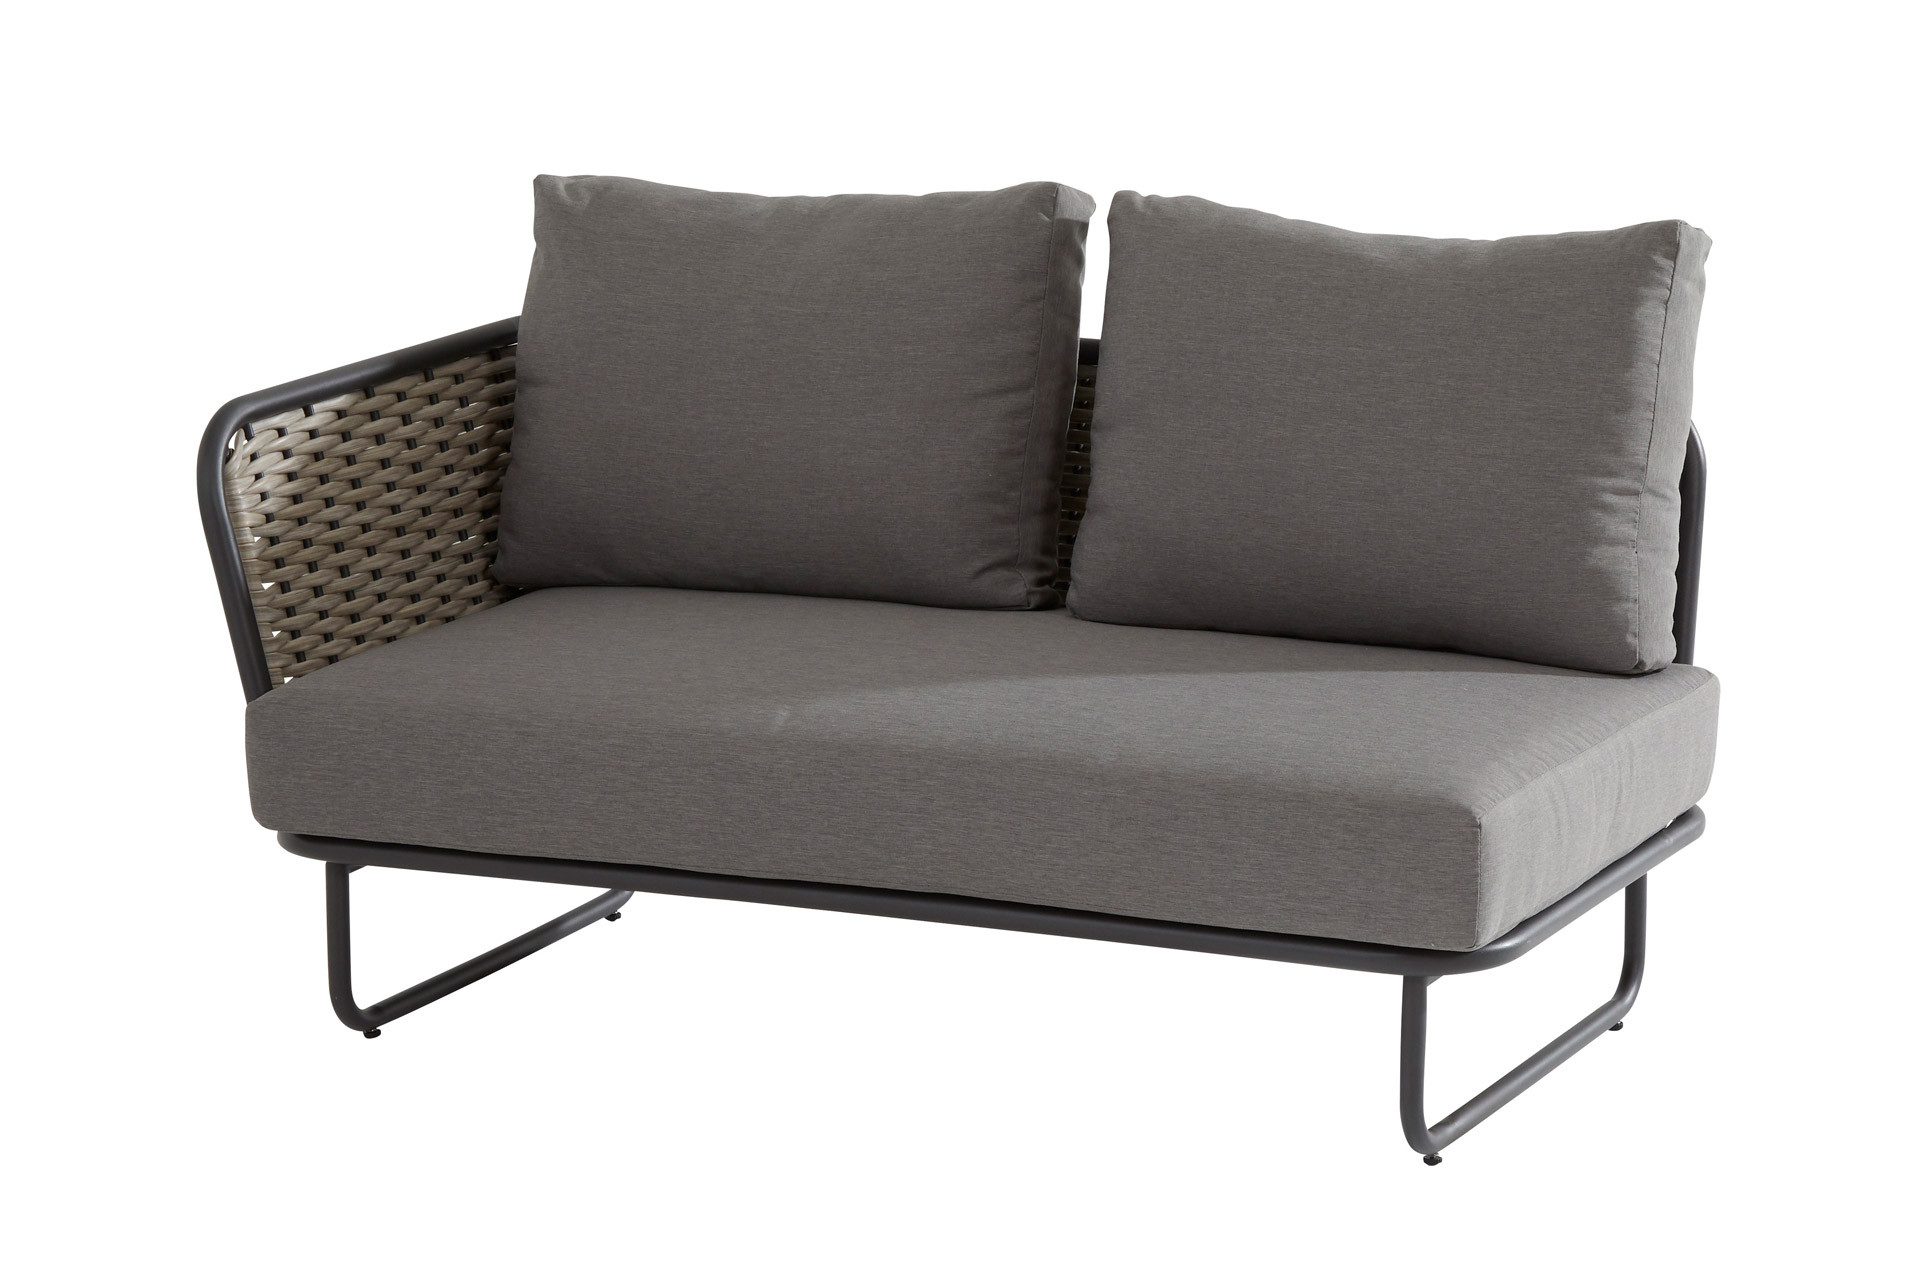 Bo 2 Seater right arm with 3 cushions